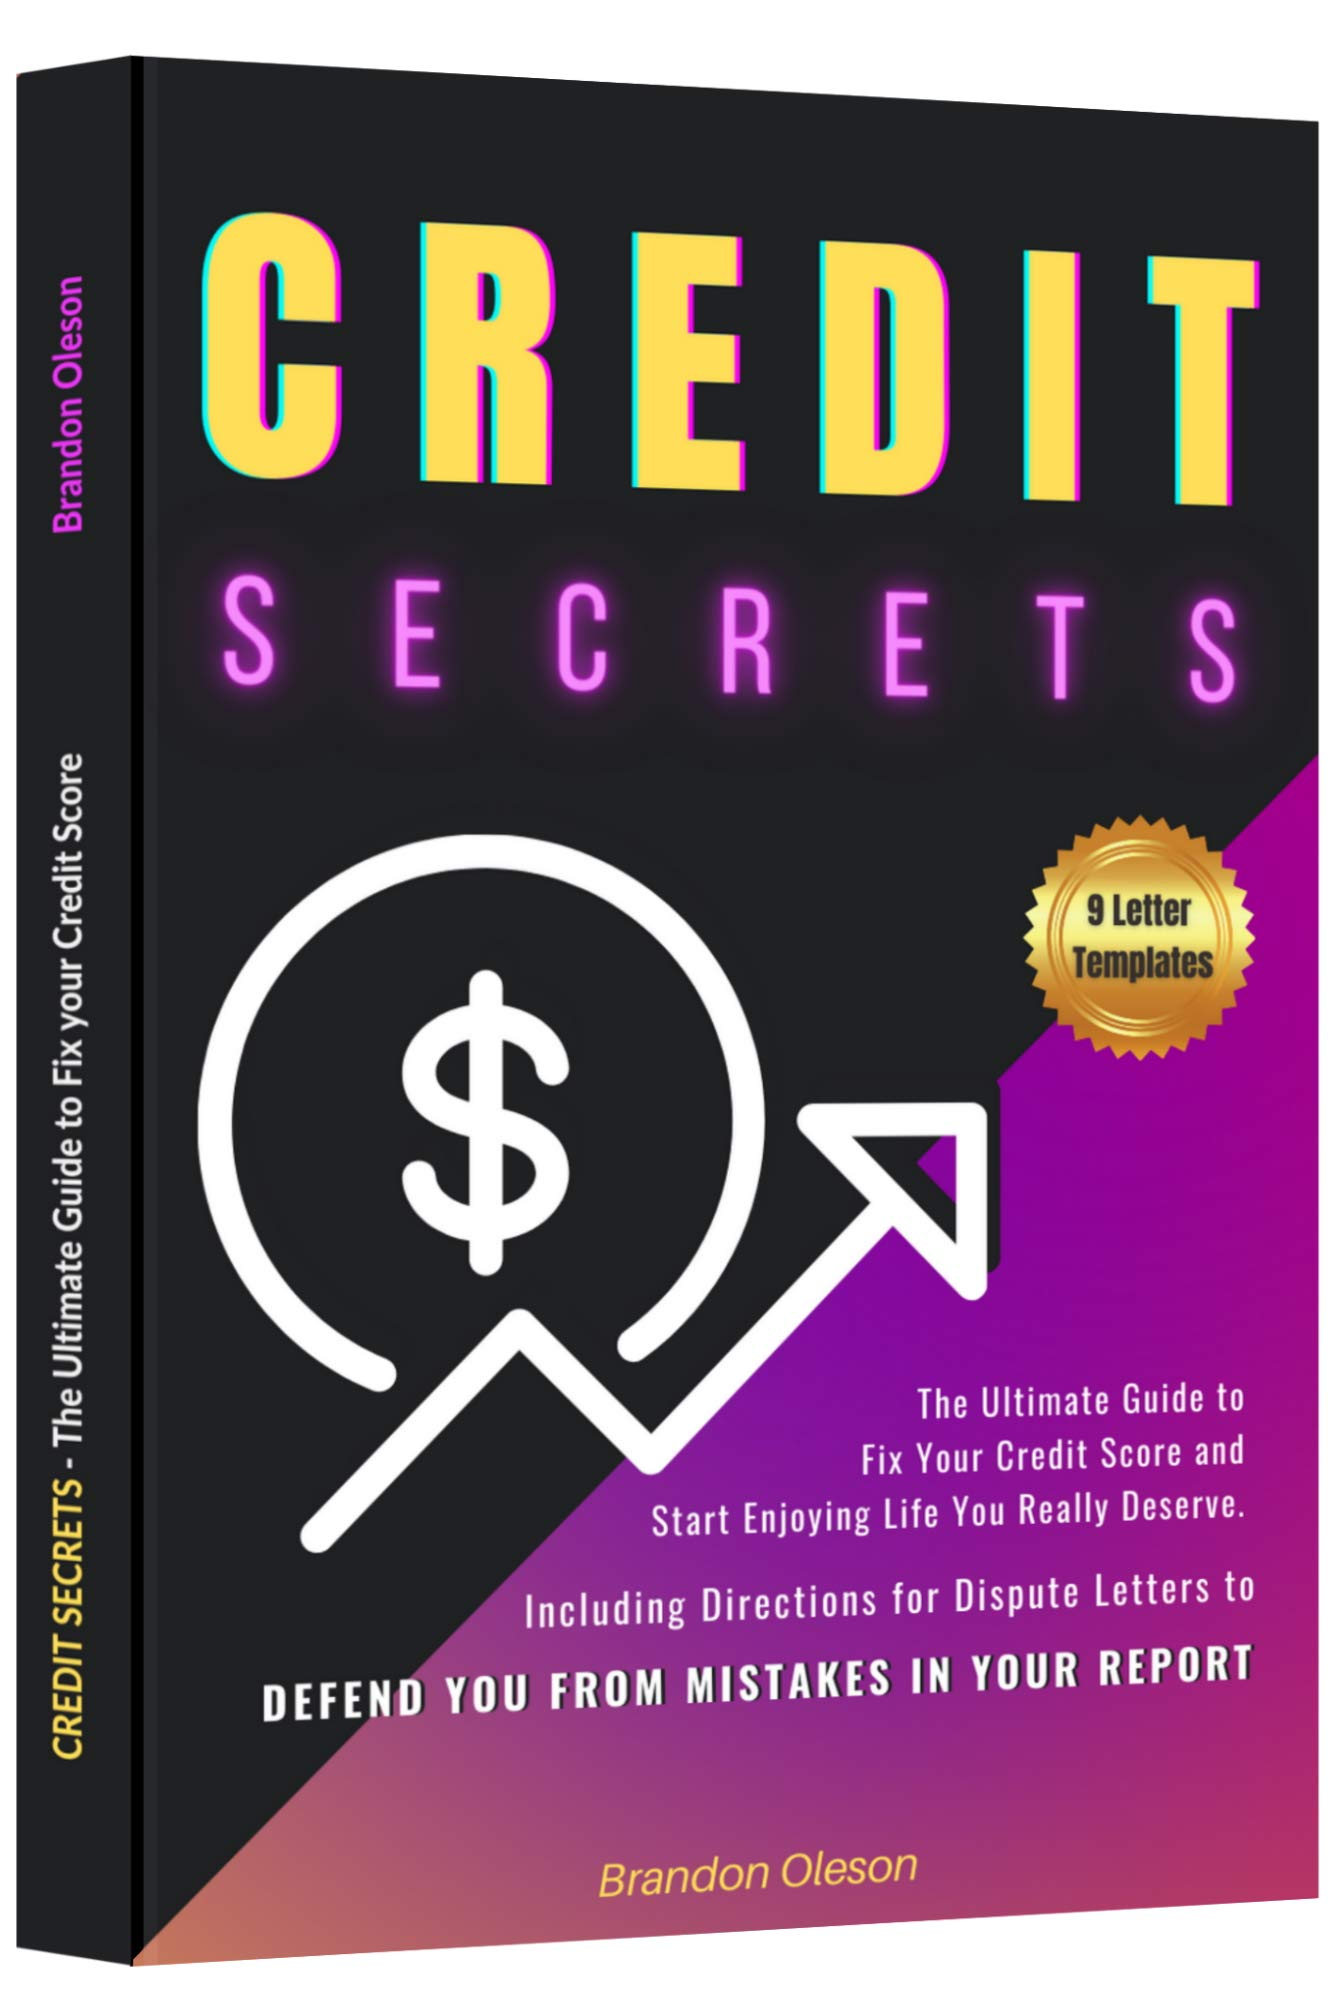 CREDIT SECRETS: The Ultimate Guide to Fix Your Credit Score and Start Enjoying Life You Really Deserve. Including Directions for Dispute Letters to Defend You from Mistakes in Your Report